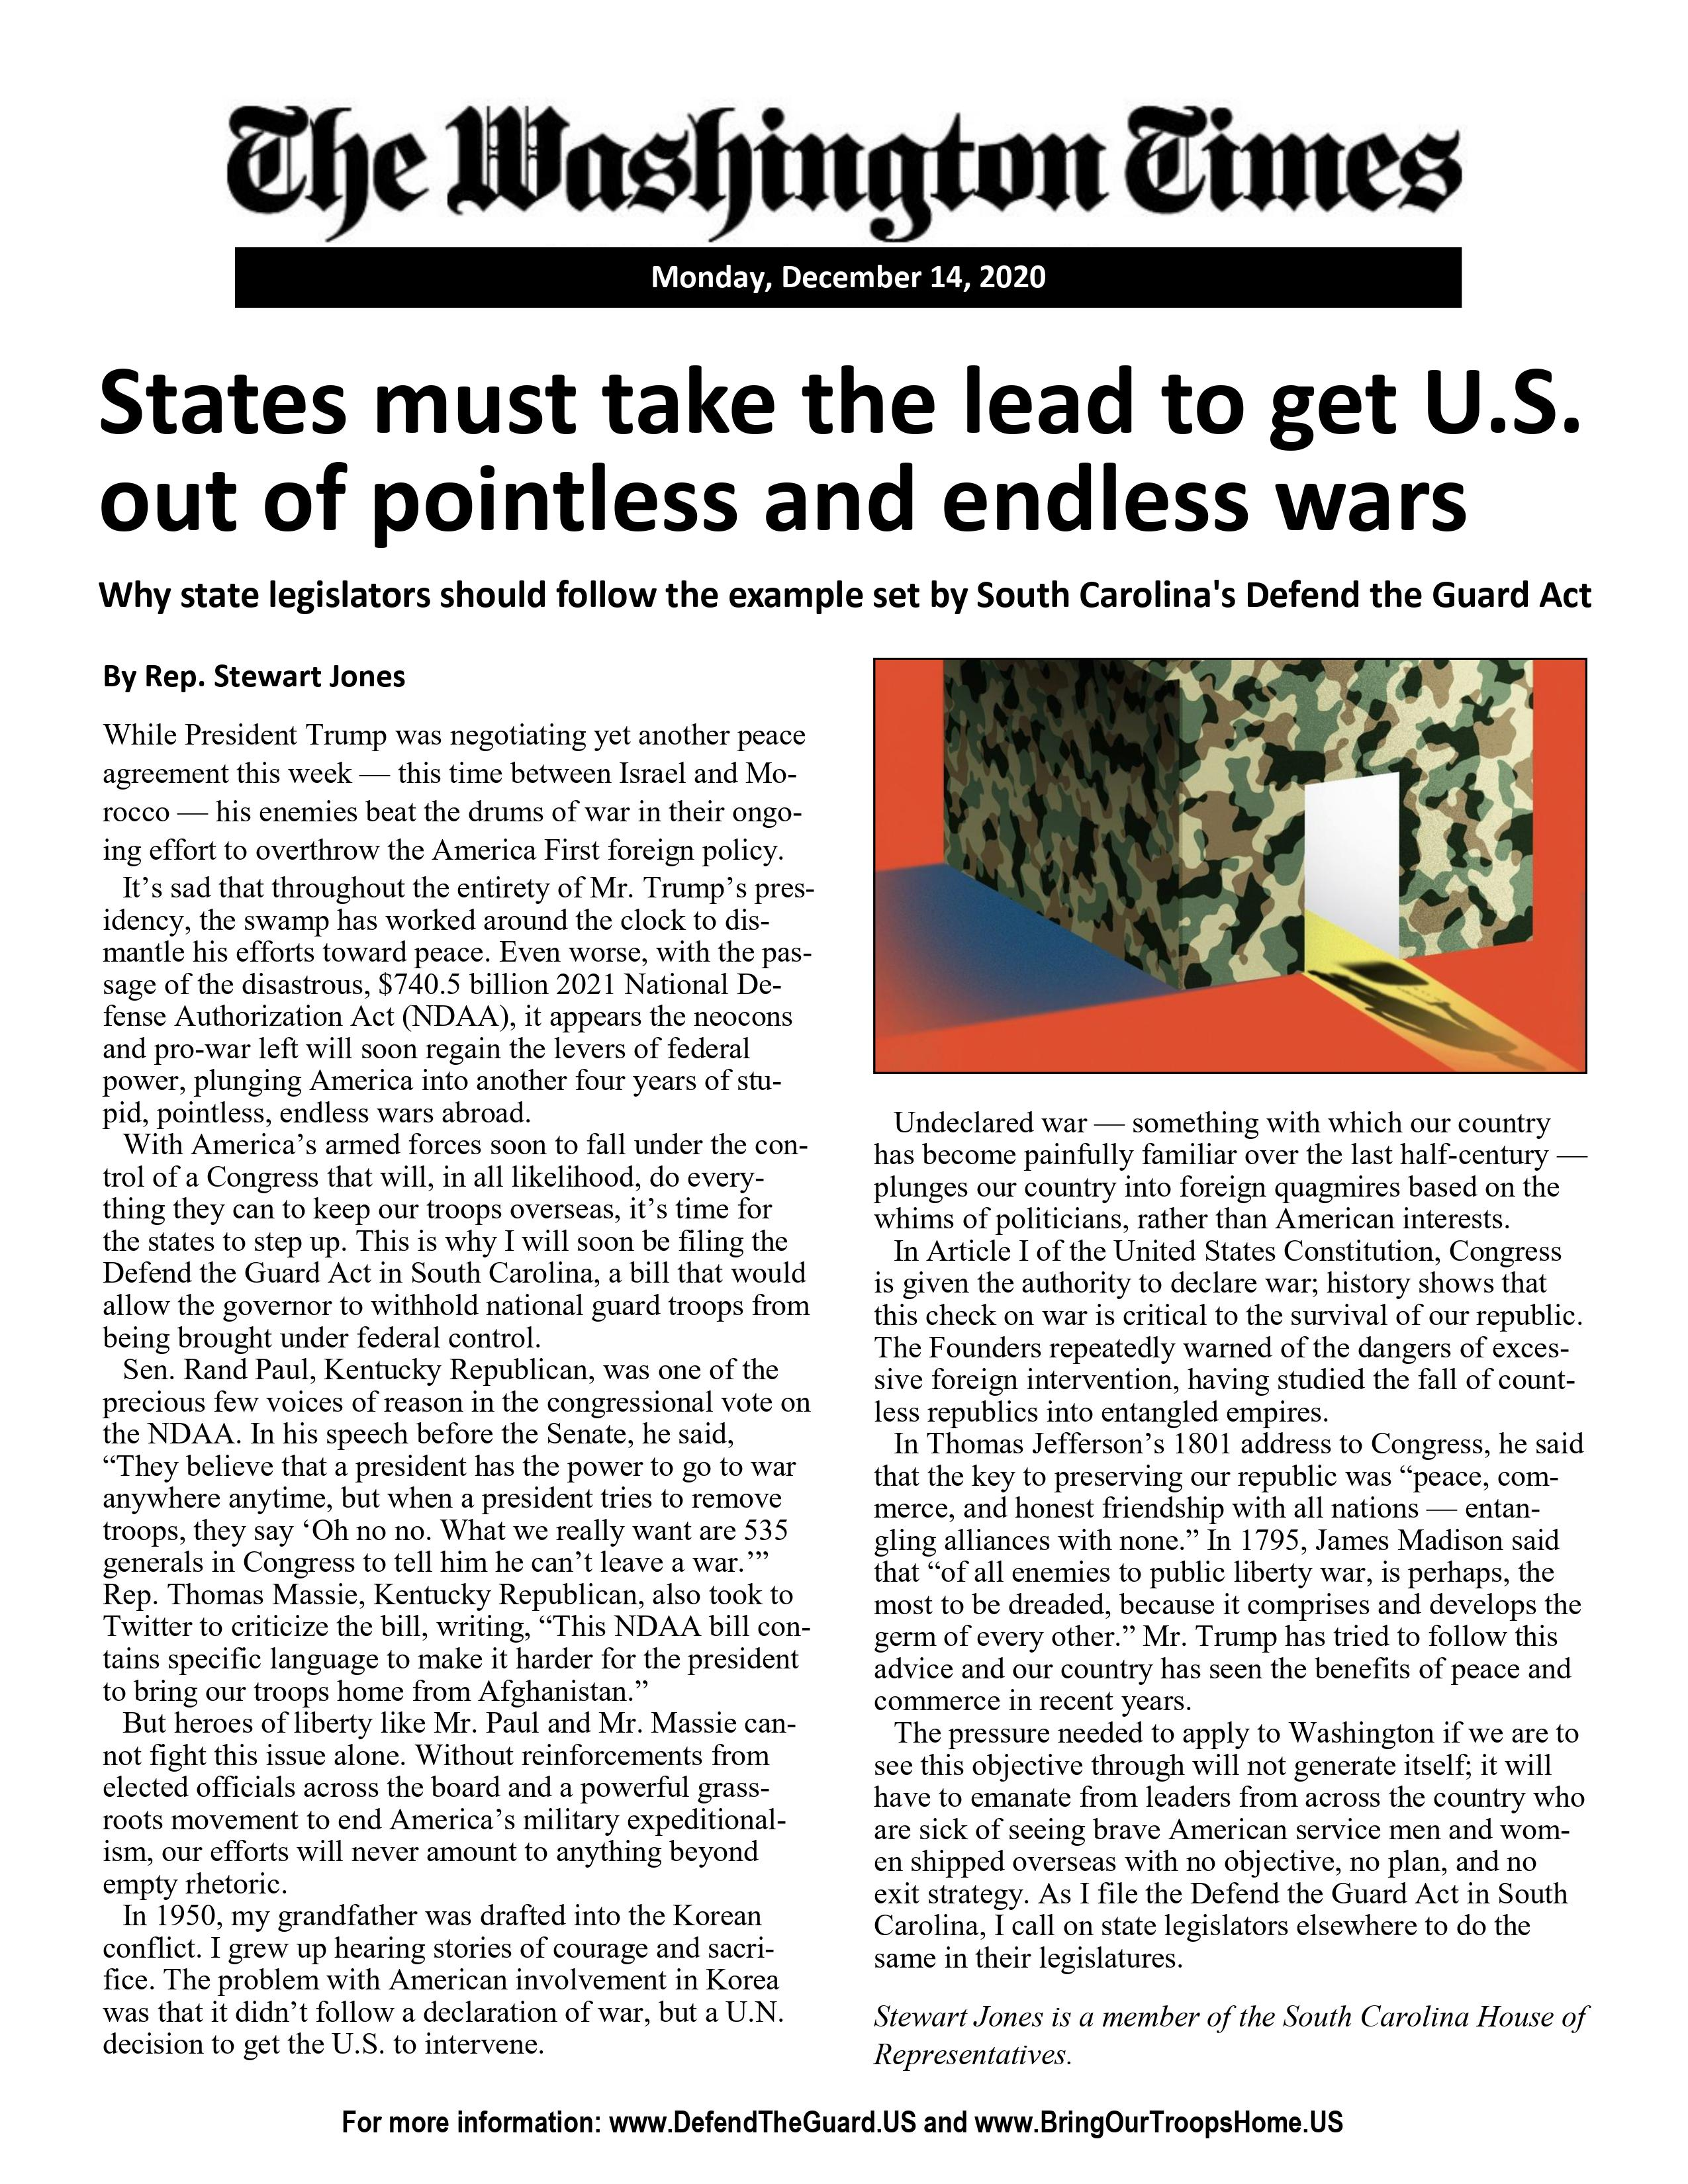 States Must Take the Lead to Get U.S. Out of Pointless and Endless War